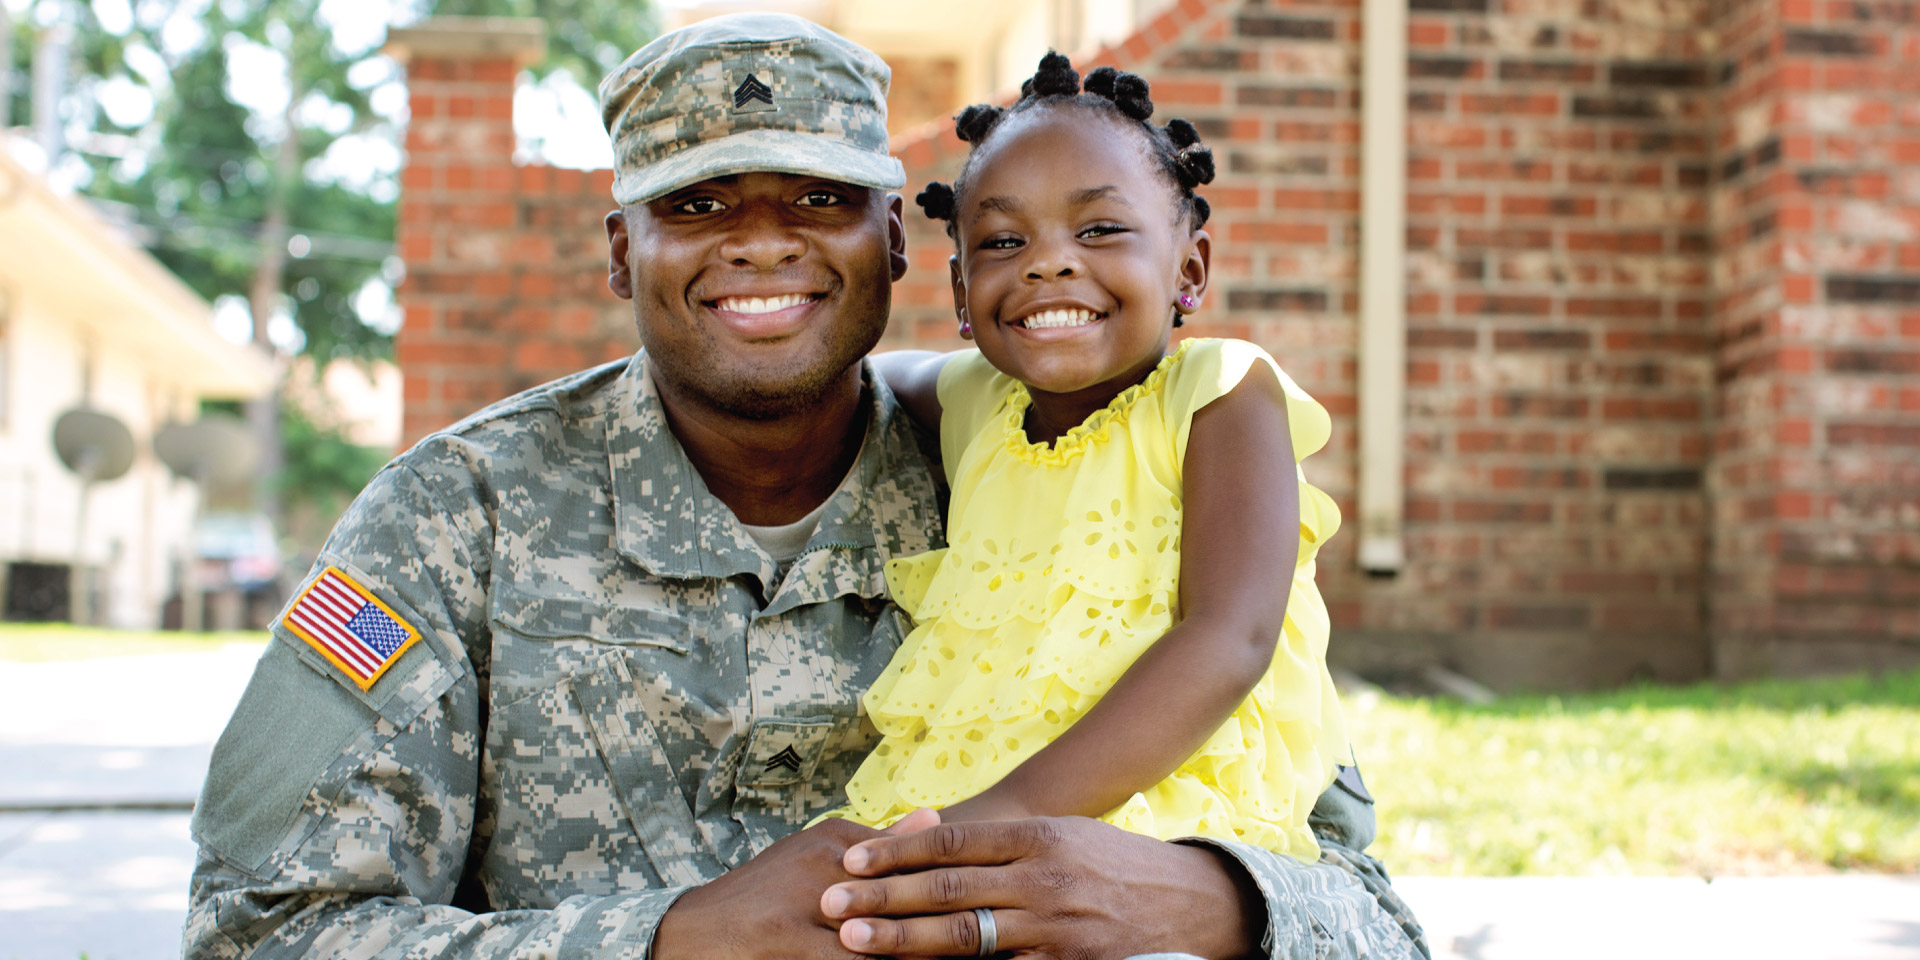 A man in a military uniform squats and smiles with his daughter on his knee.